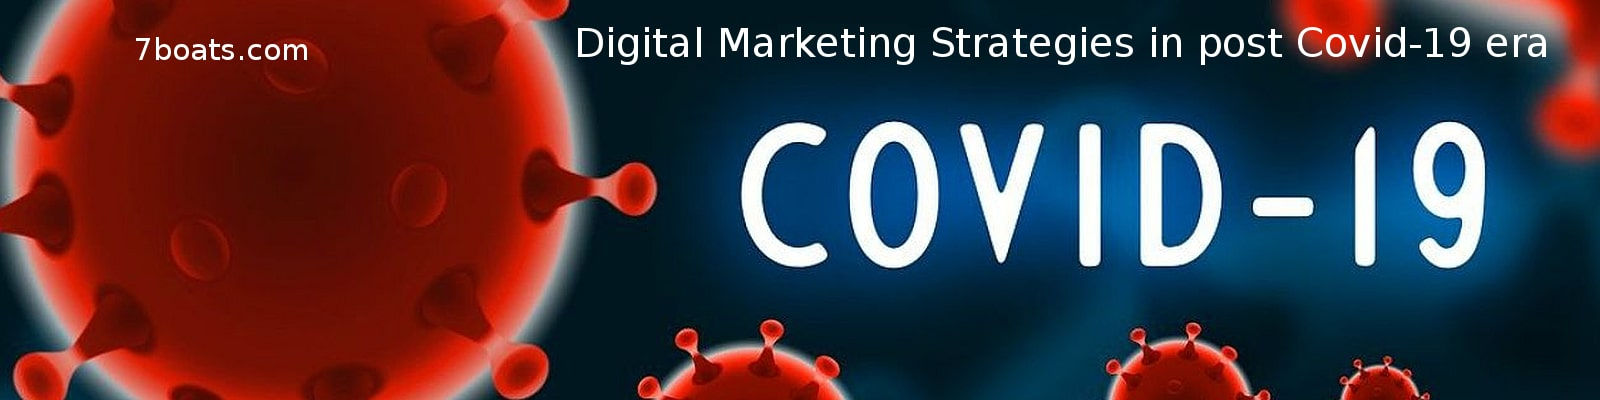 decoding digital strategies in post Covid-19 period